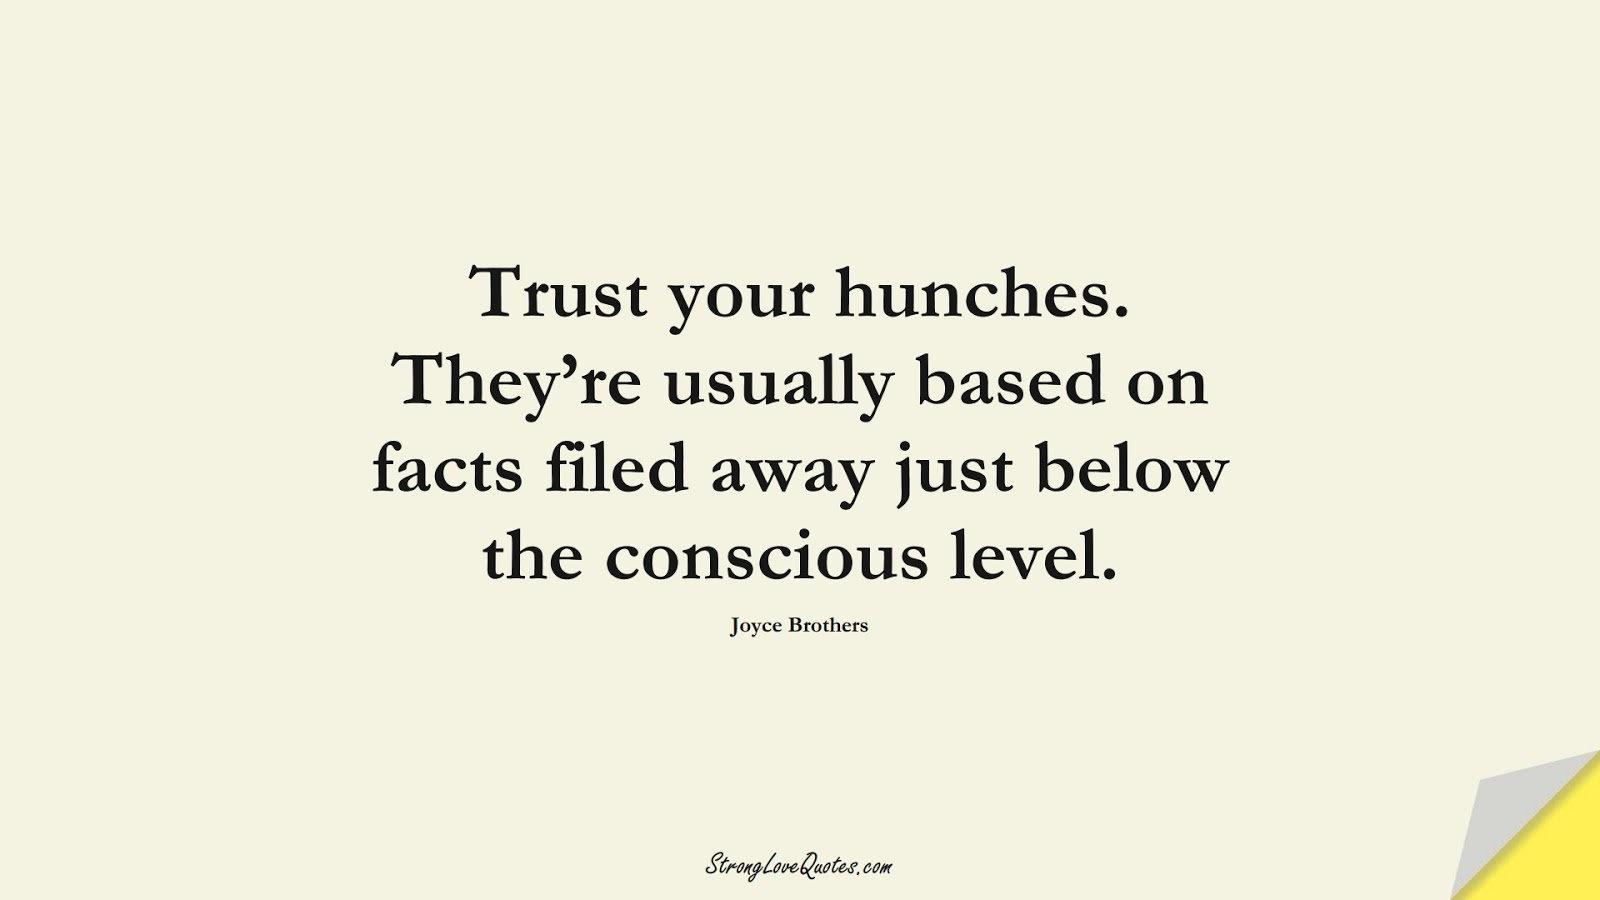 Trust your hunches. They're usually based on facts filed away just below the conscious level. (Joyce Brothers);  #KnowledgeQuotes